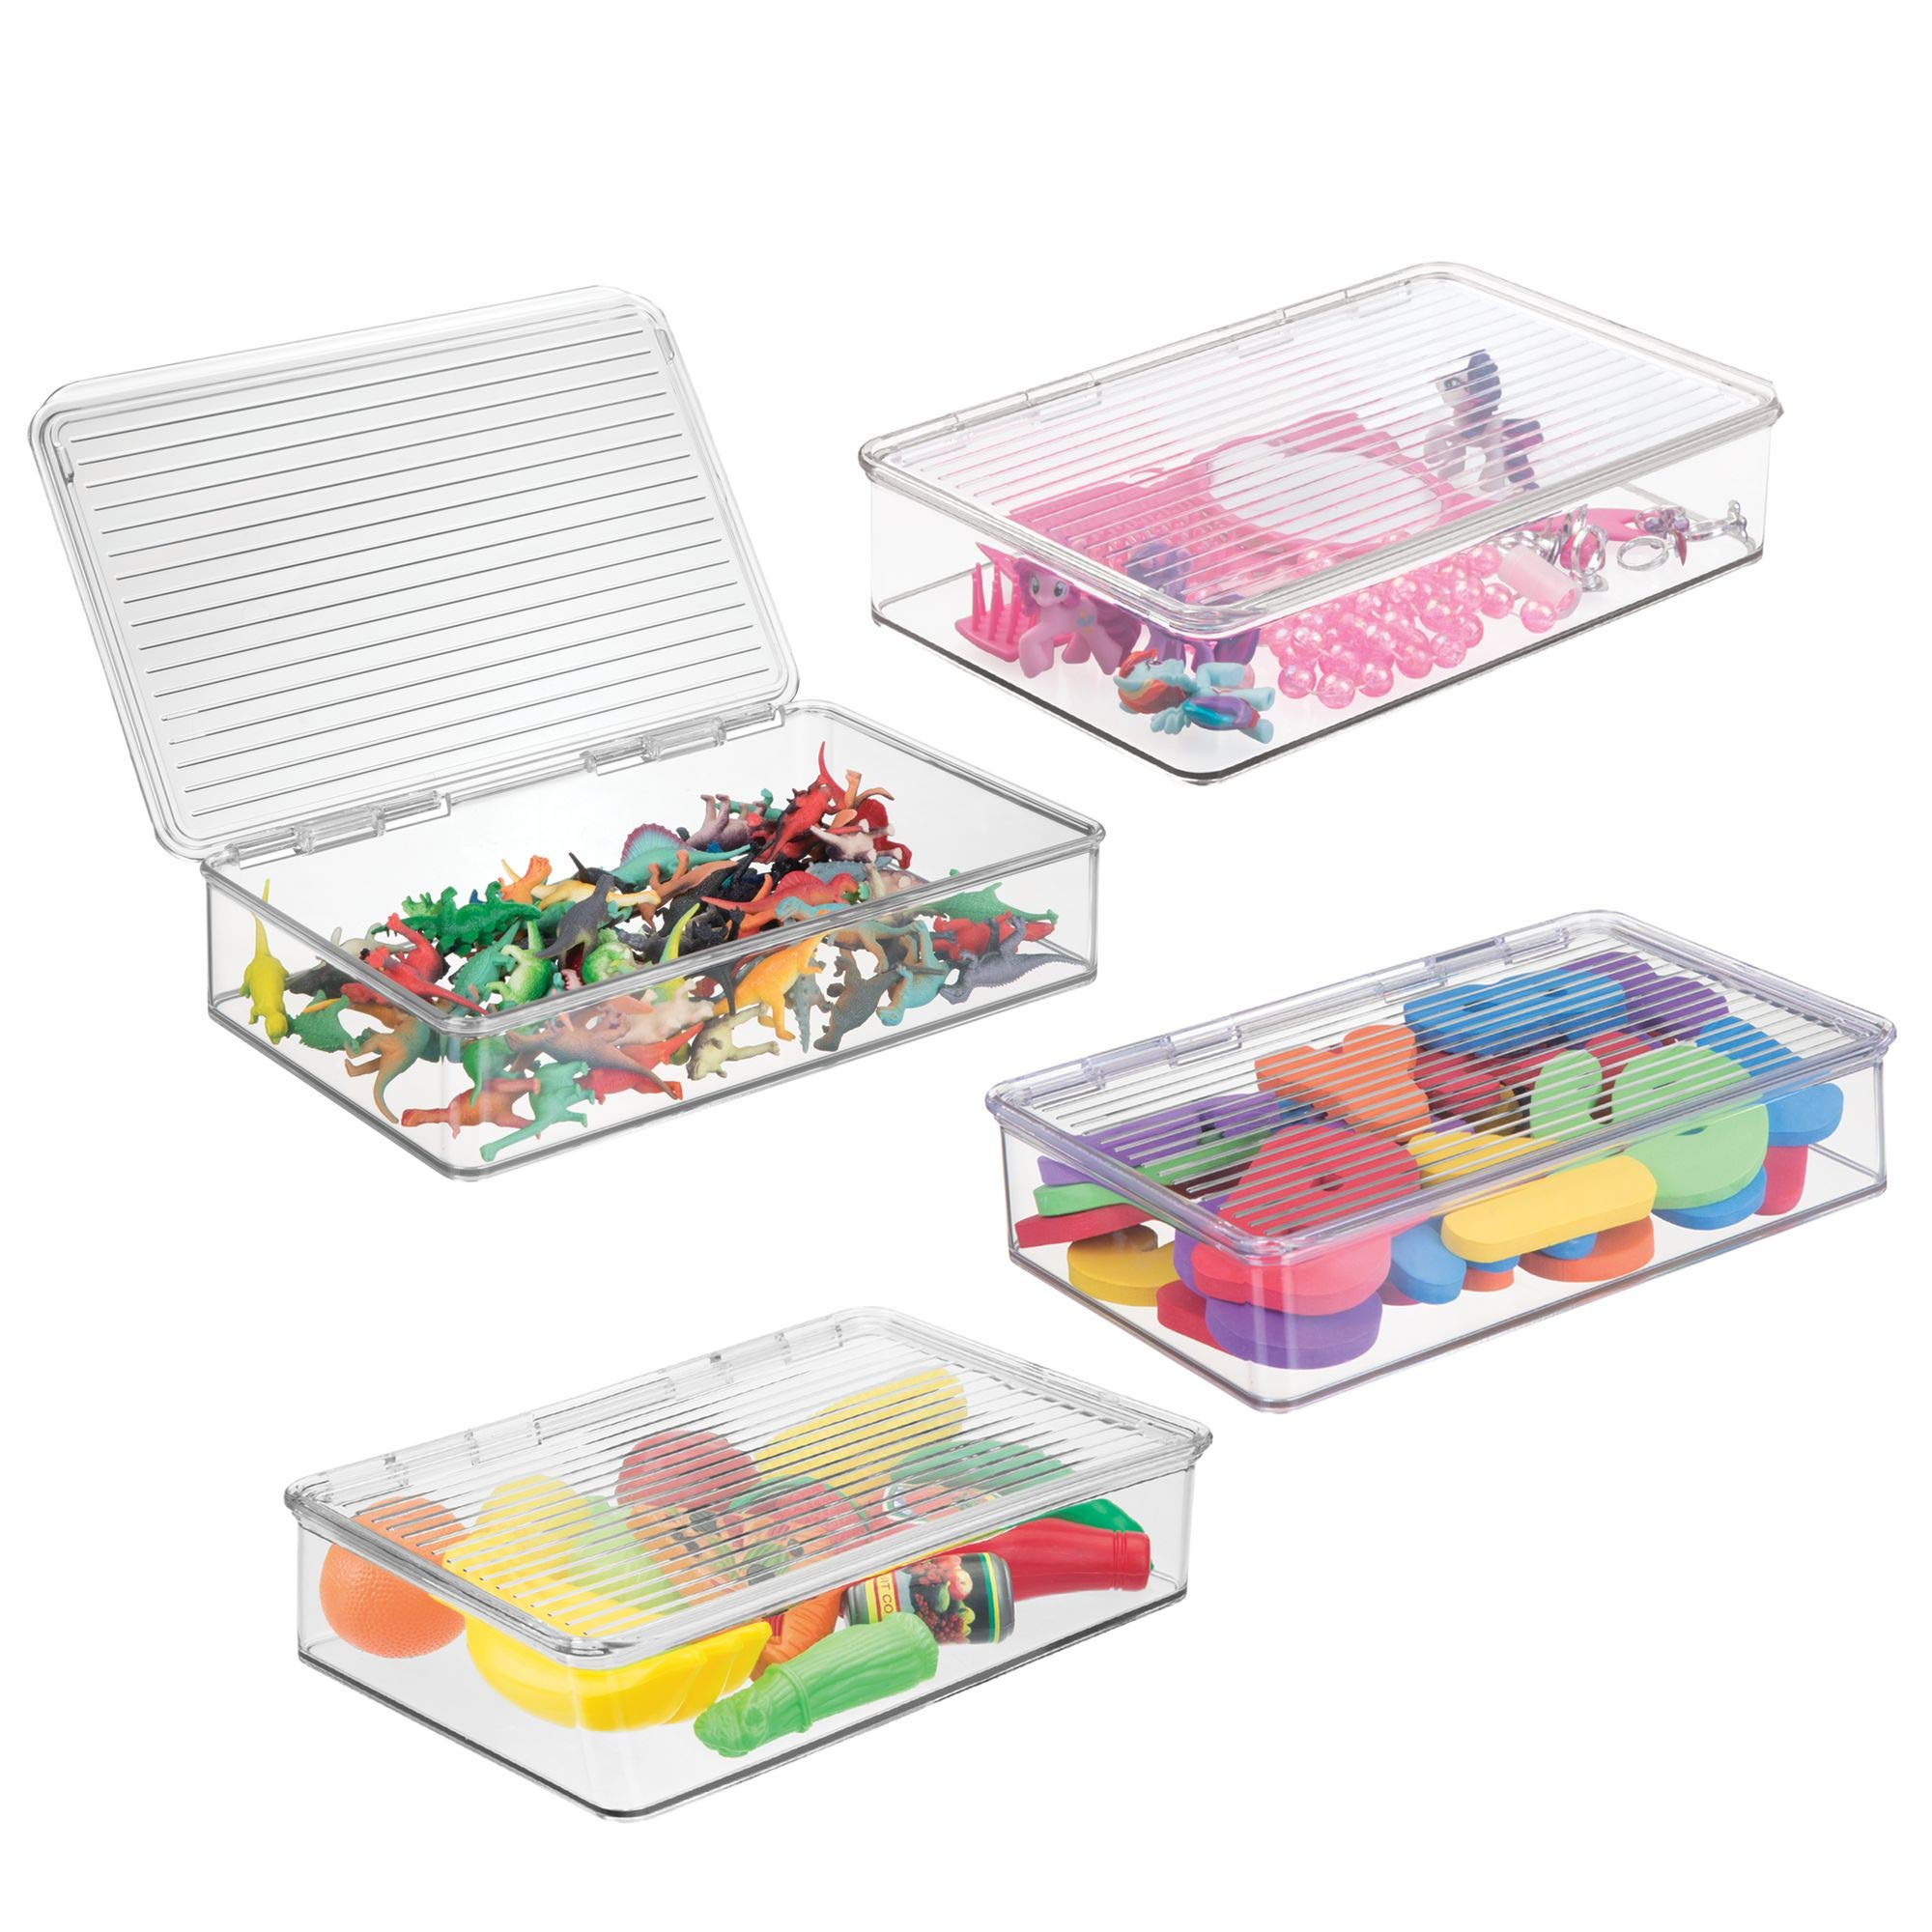 mDesign Slim Stackable Toy Storage Bin with Hinged Lid - Playroom Plastic Organizer for Kid/Child Cars, Barbie Dolls, Baby Doll Clothes, Puzzles, Army Men, Building Blocks - BPA free, Pack of 4, Clear